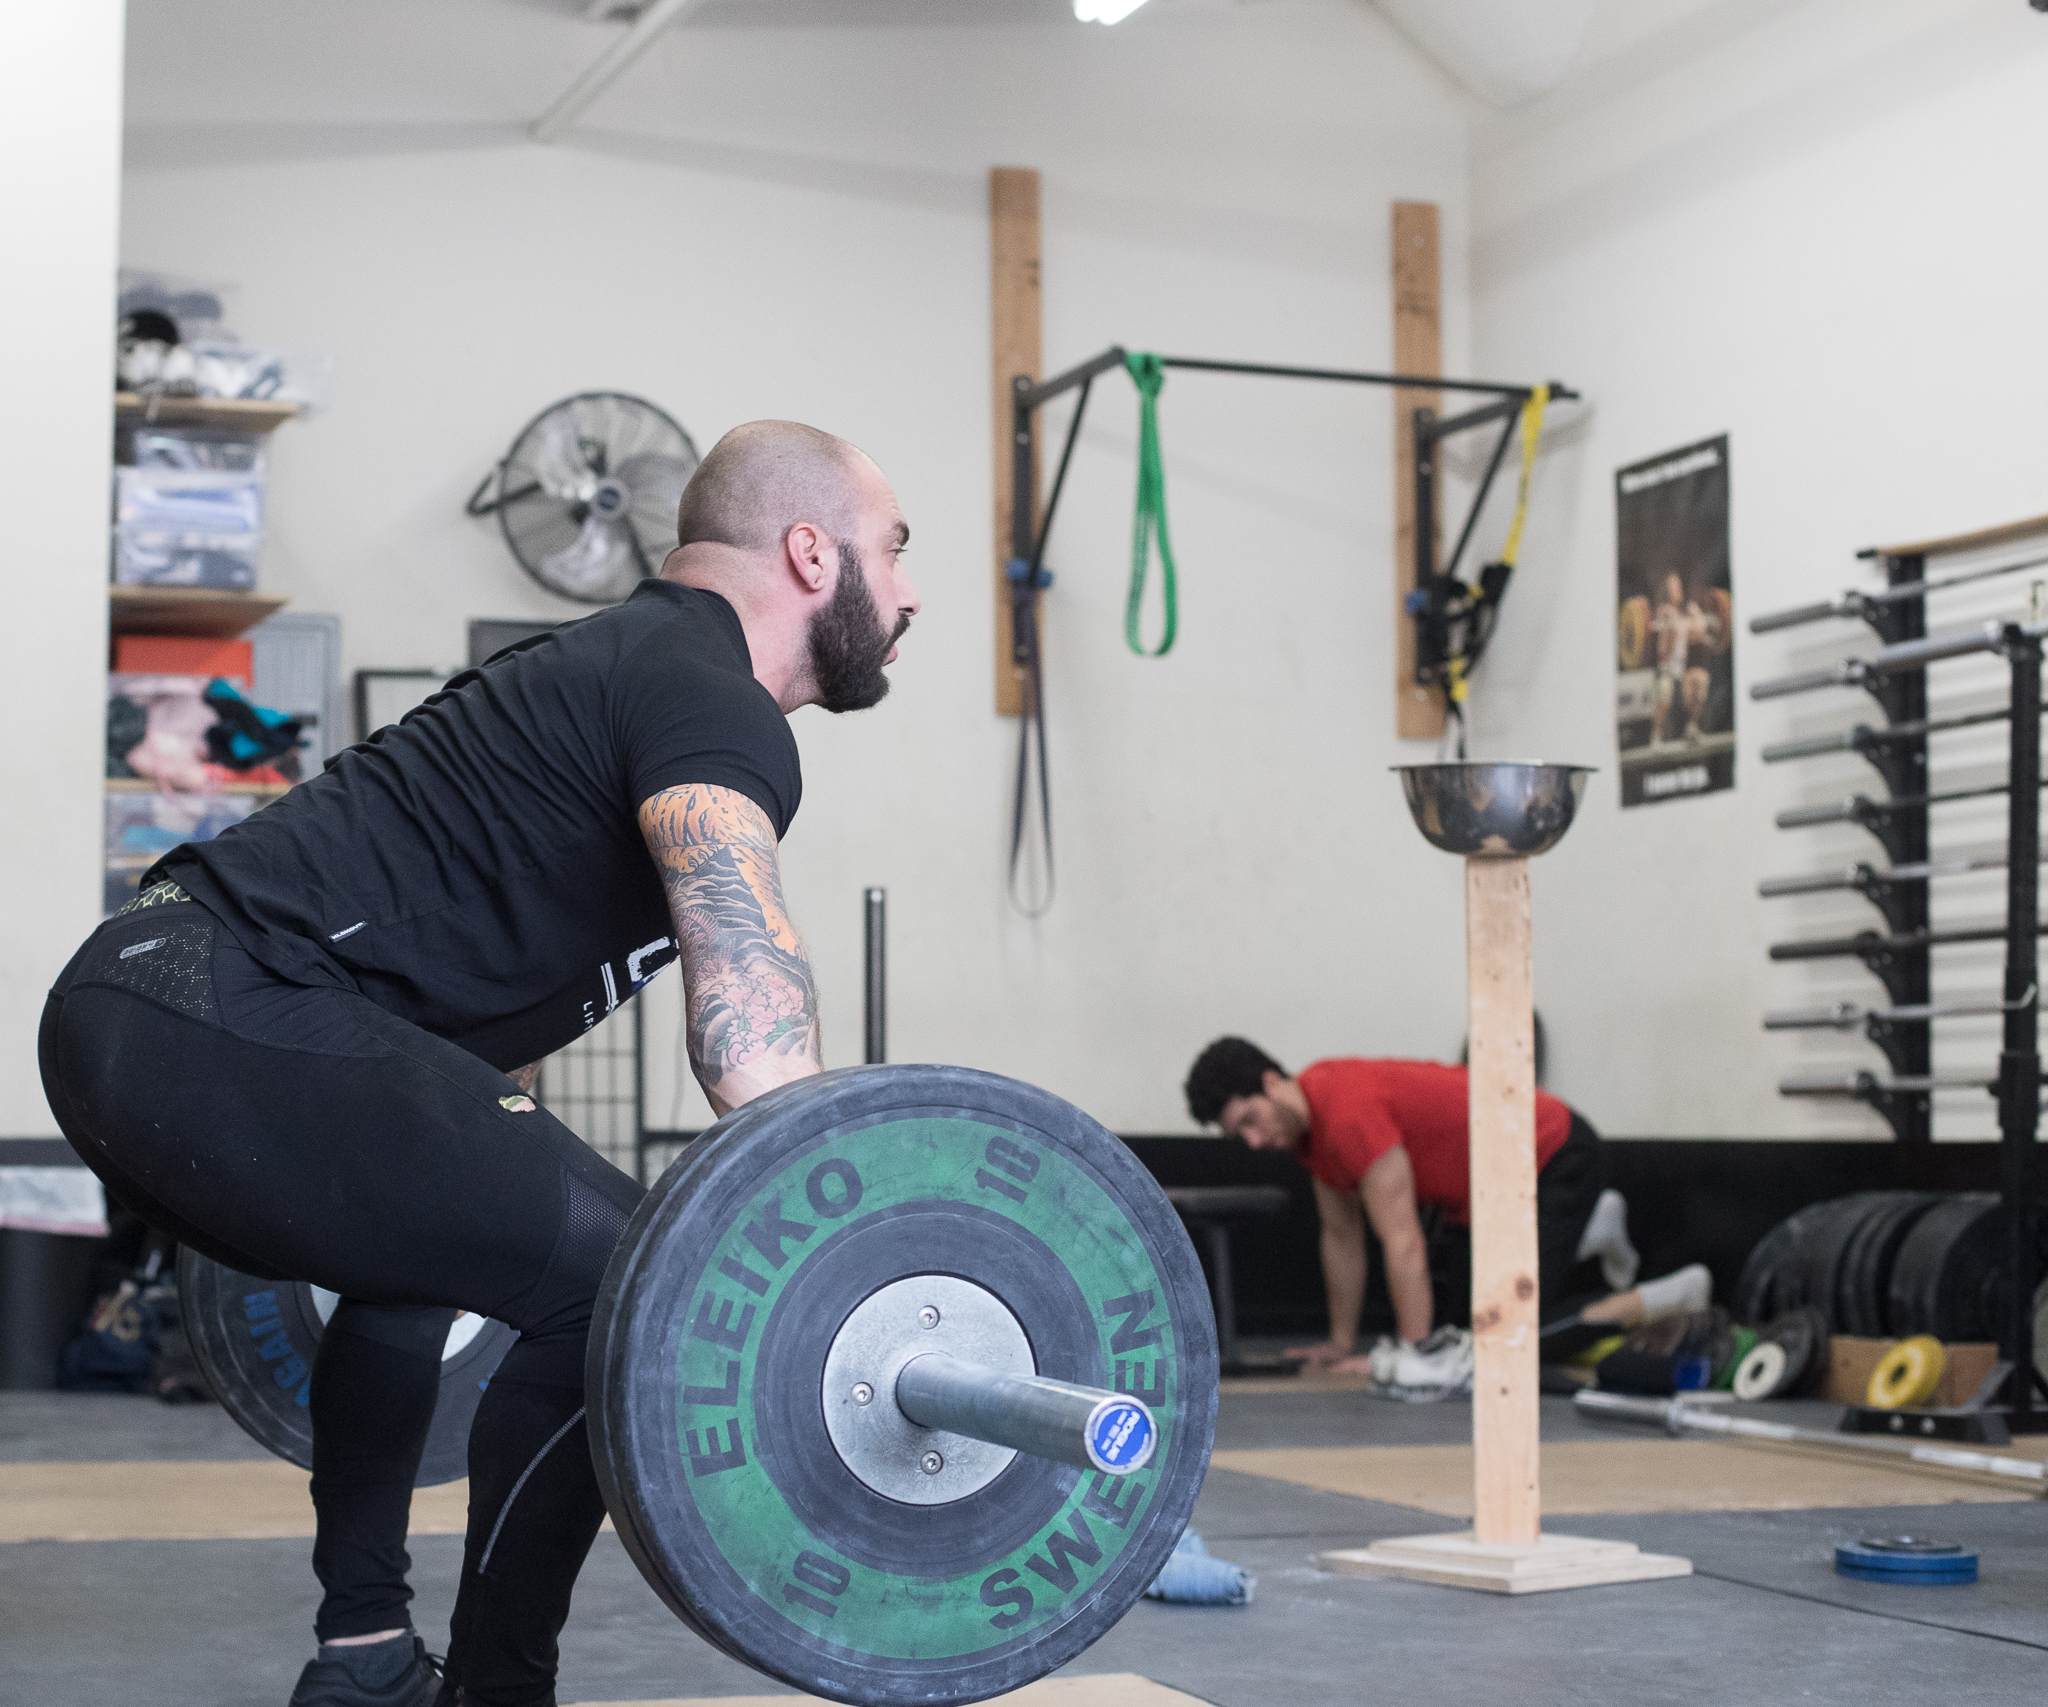 james-wright-weightlifting-coach-27.jpg